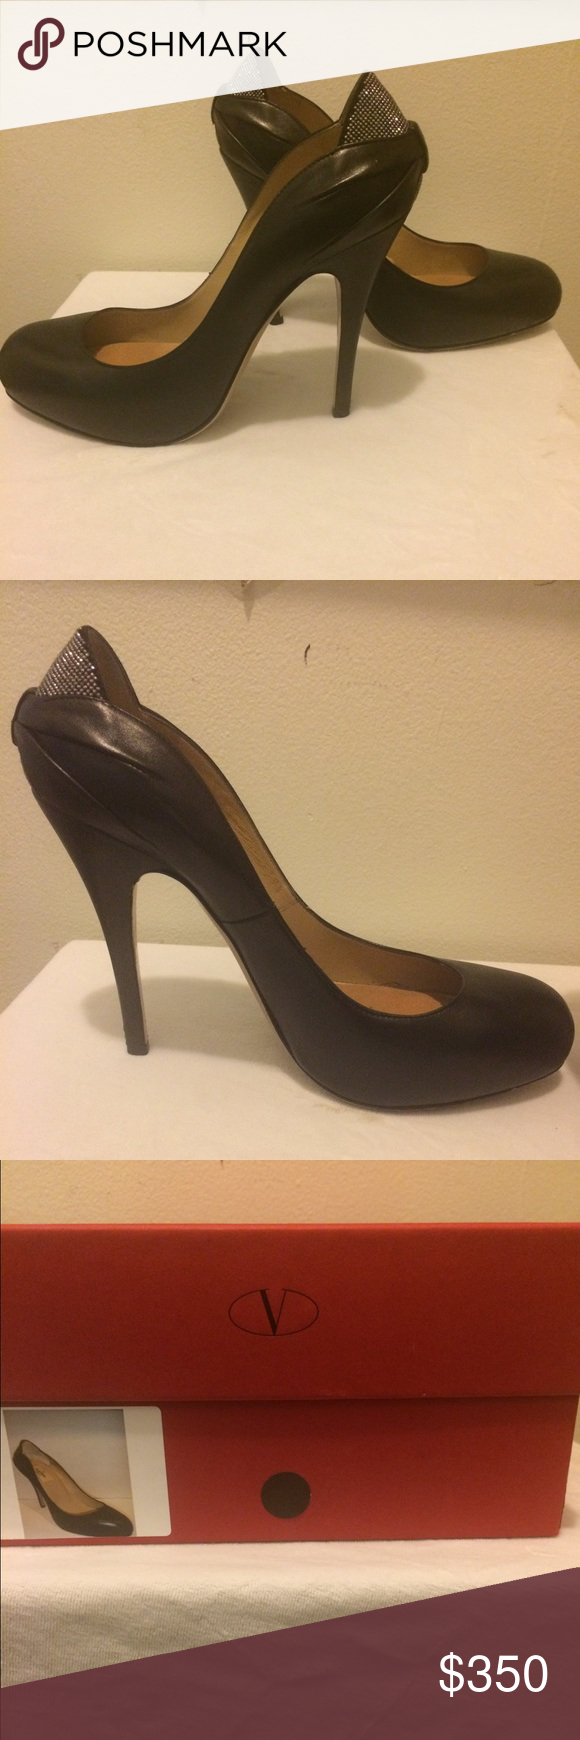 Valentino Black Leather Stiletto with Swarovski Valentino Black Leather Stiletto with Swarovski crystal embellishments on heel.  4.5 inch heel. Worn 3 times. Exquisite condition. Will consider reasonable offers. Comes with box and shoe bag. Valentino Shoes Heels